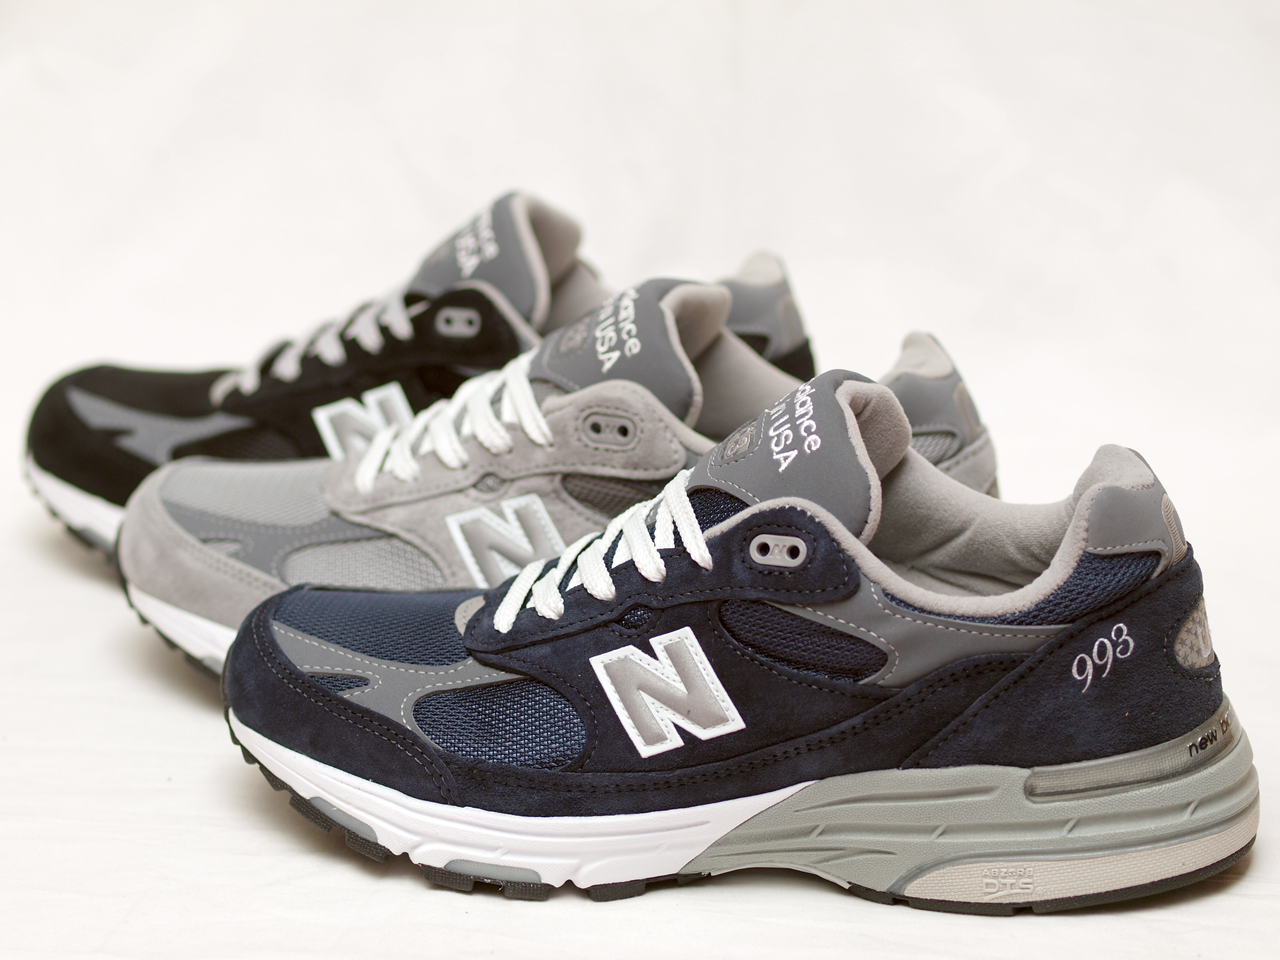 new balance / MR993 made in U.S.A.